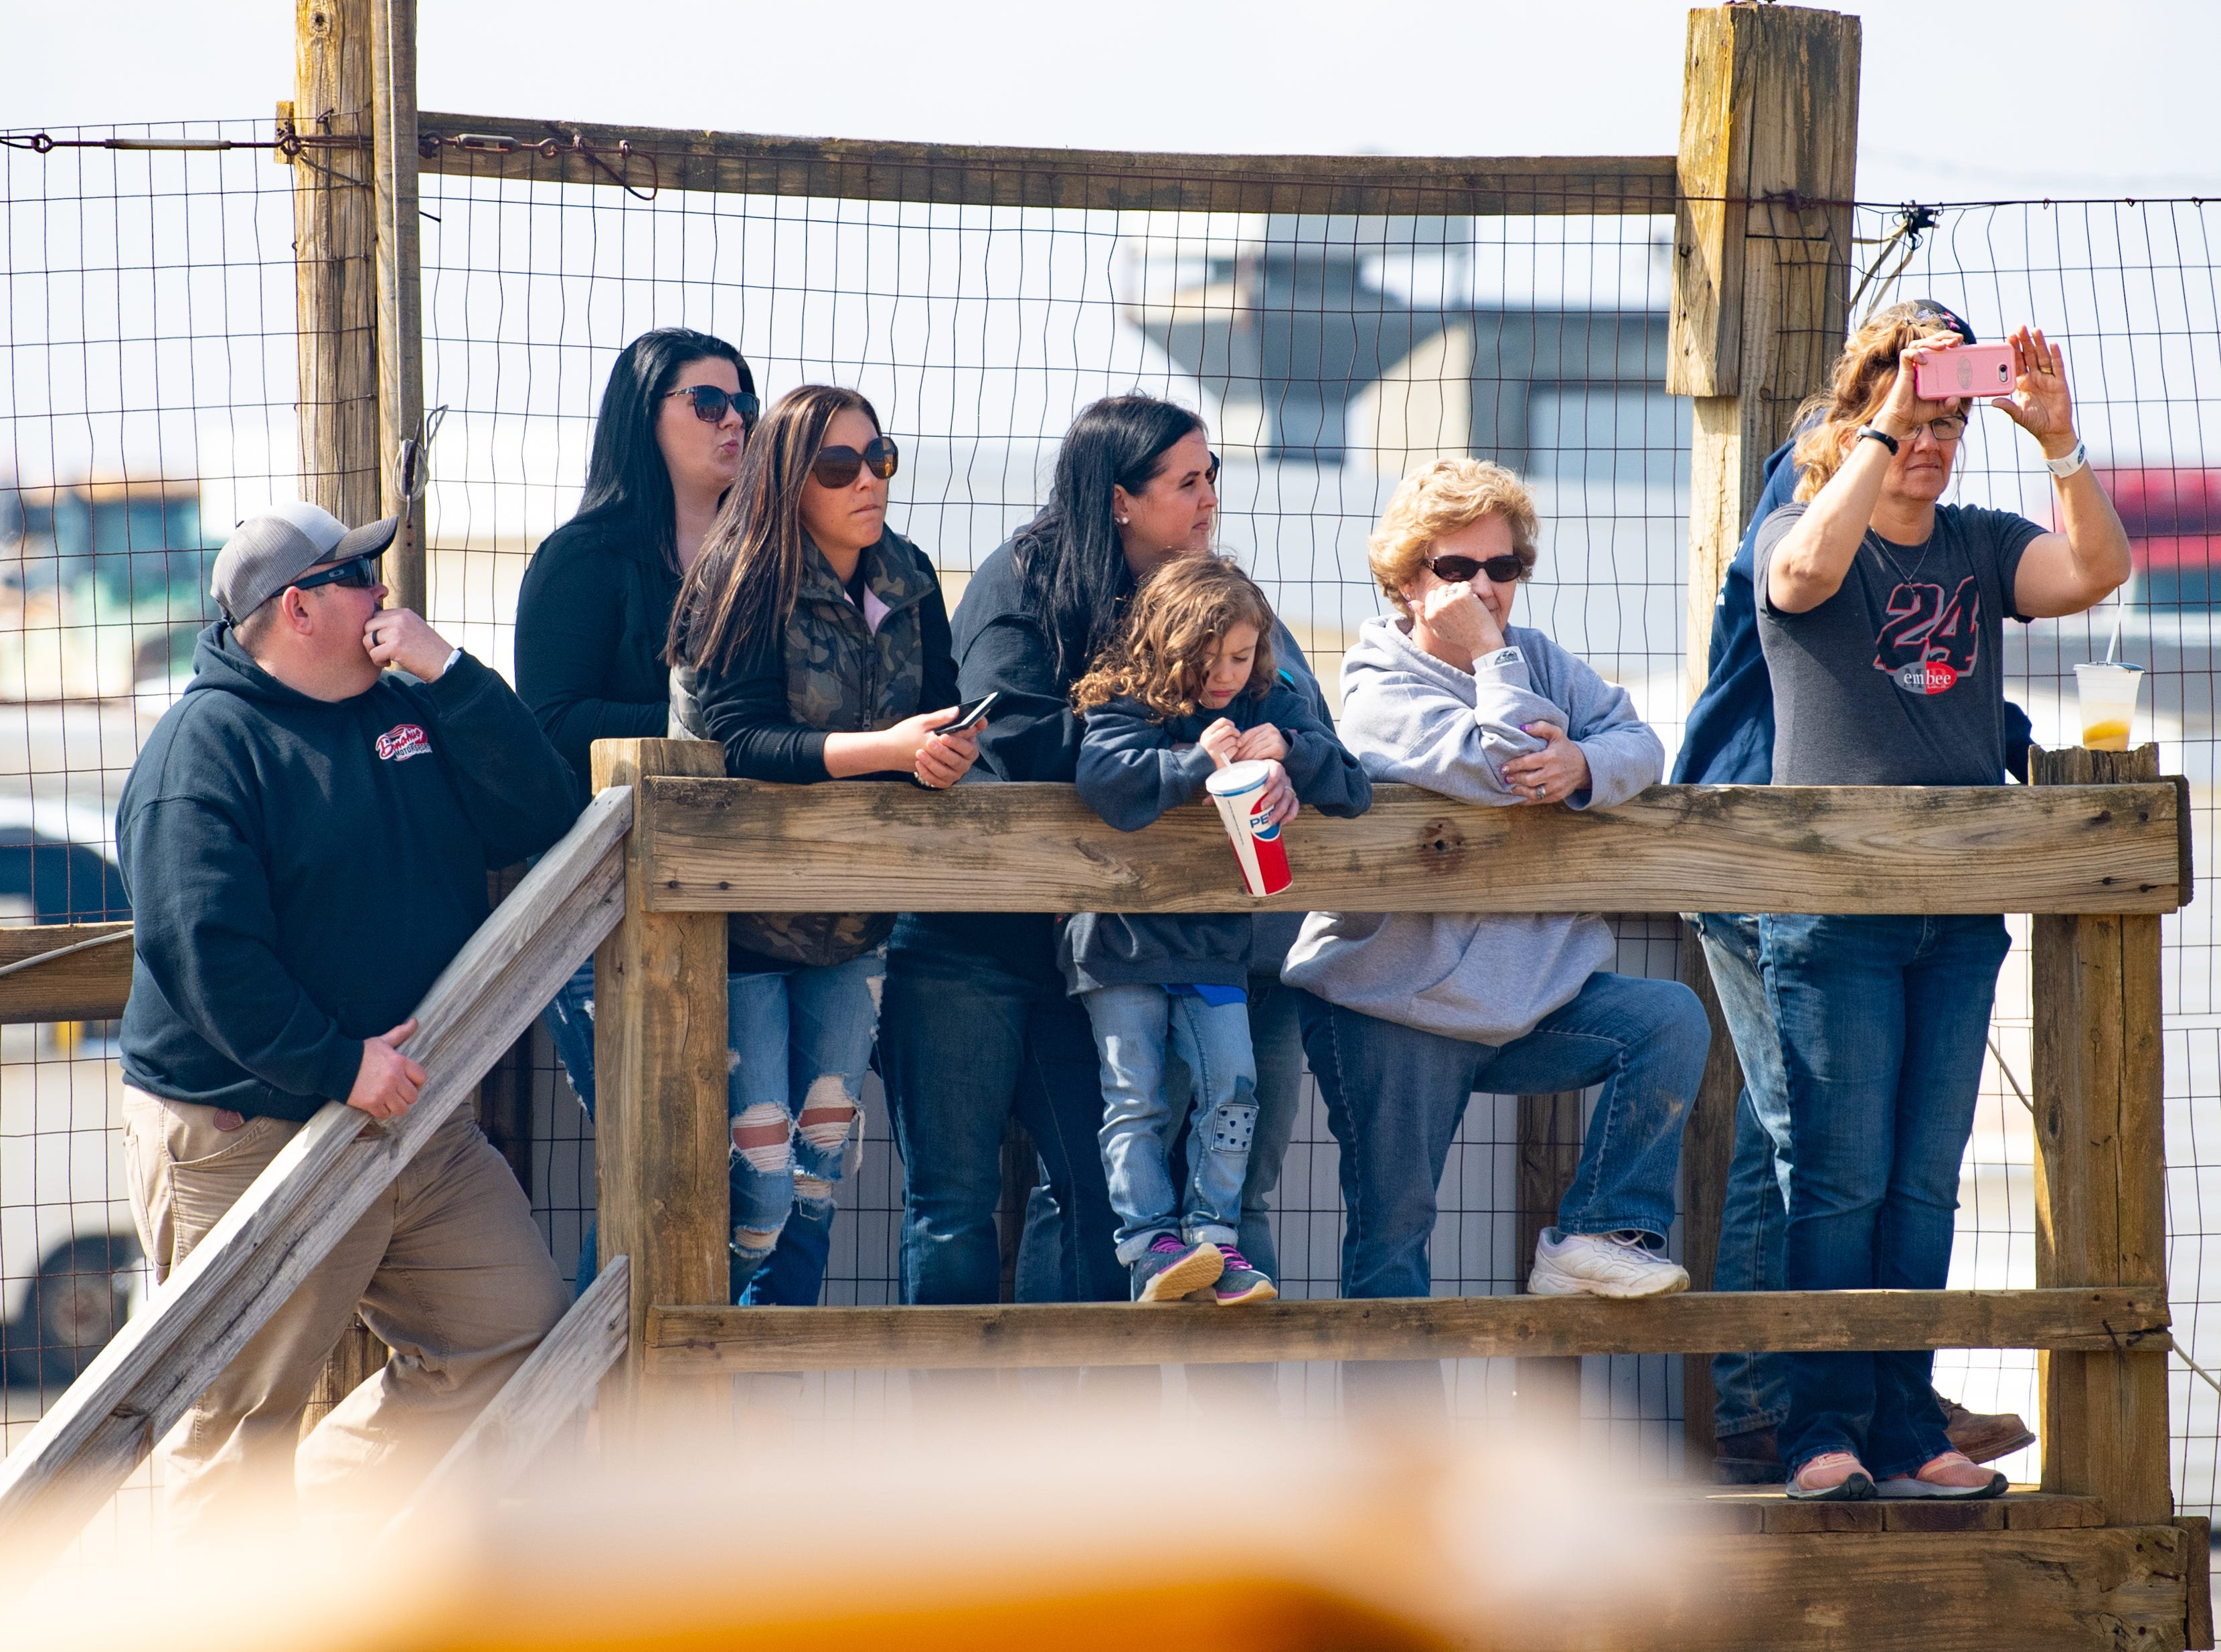 Fans watch the 600 Micro Sprints during the Trail-Way Speedway season opener, April 6, 2019.